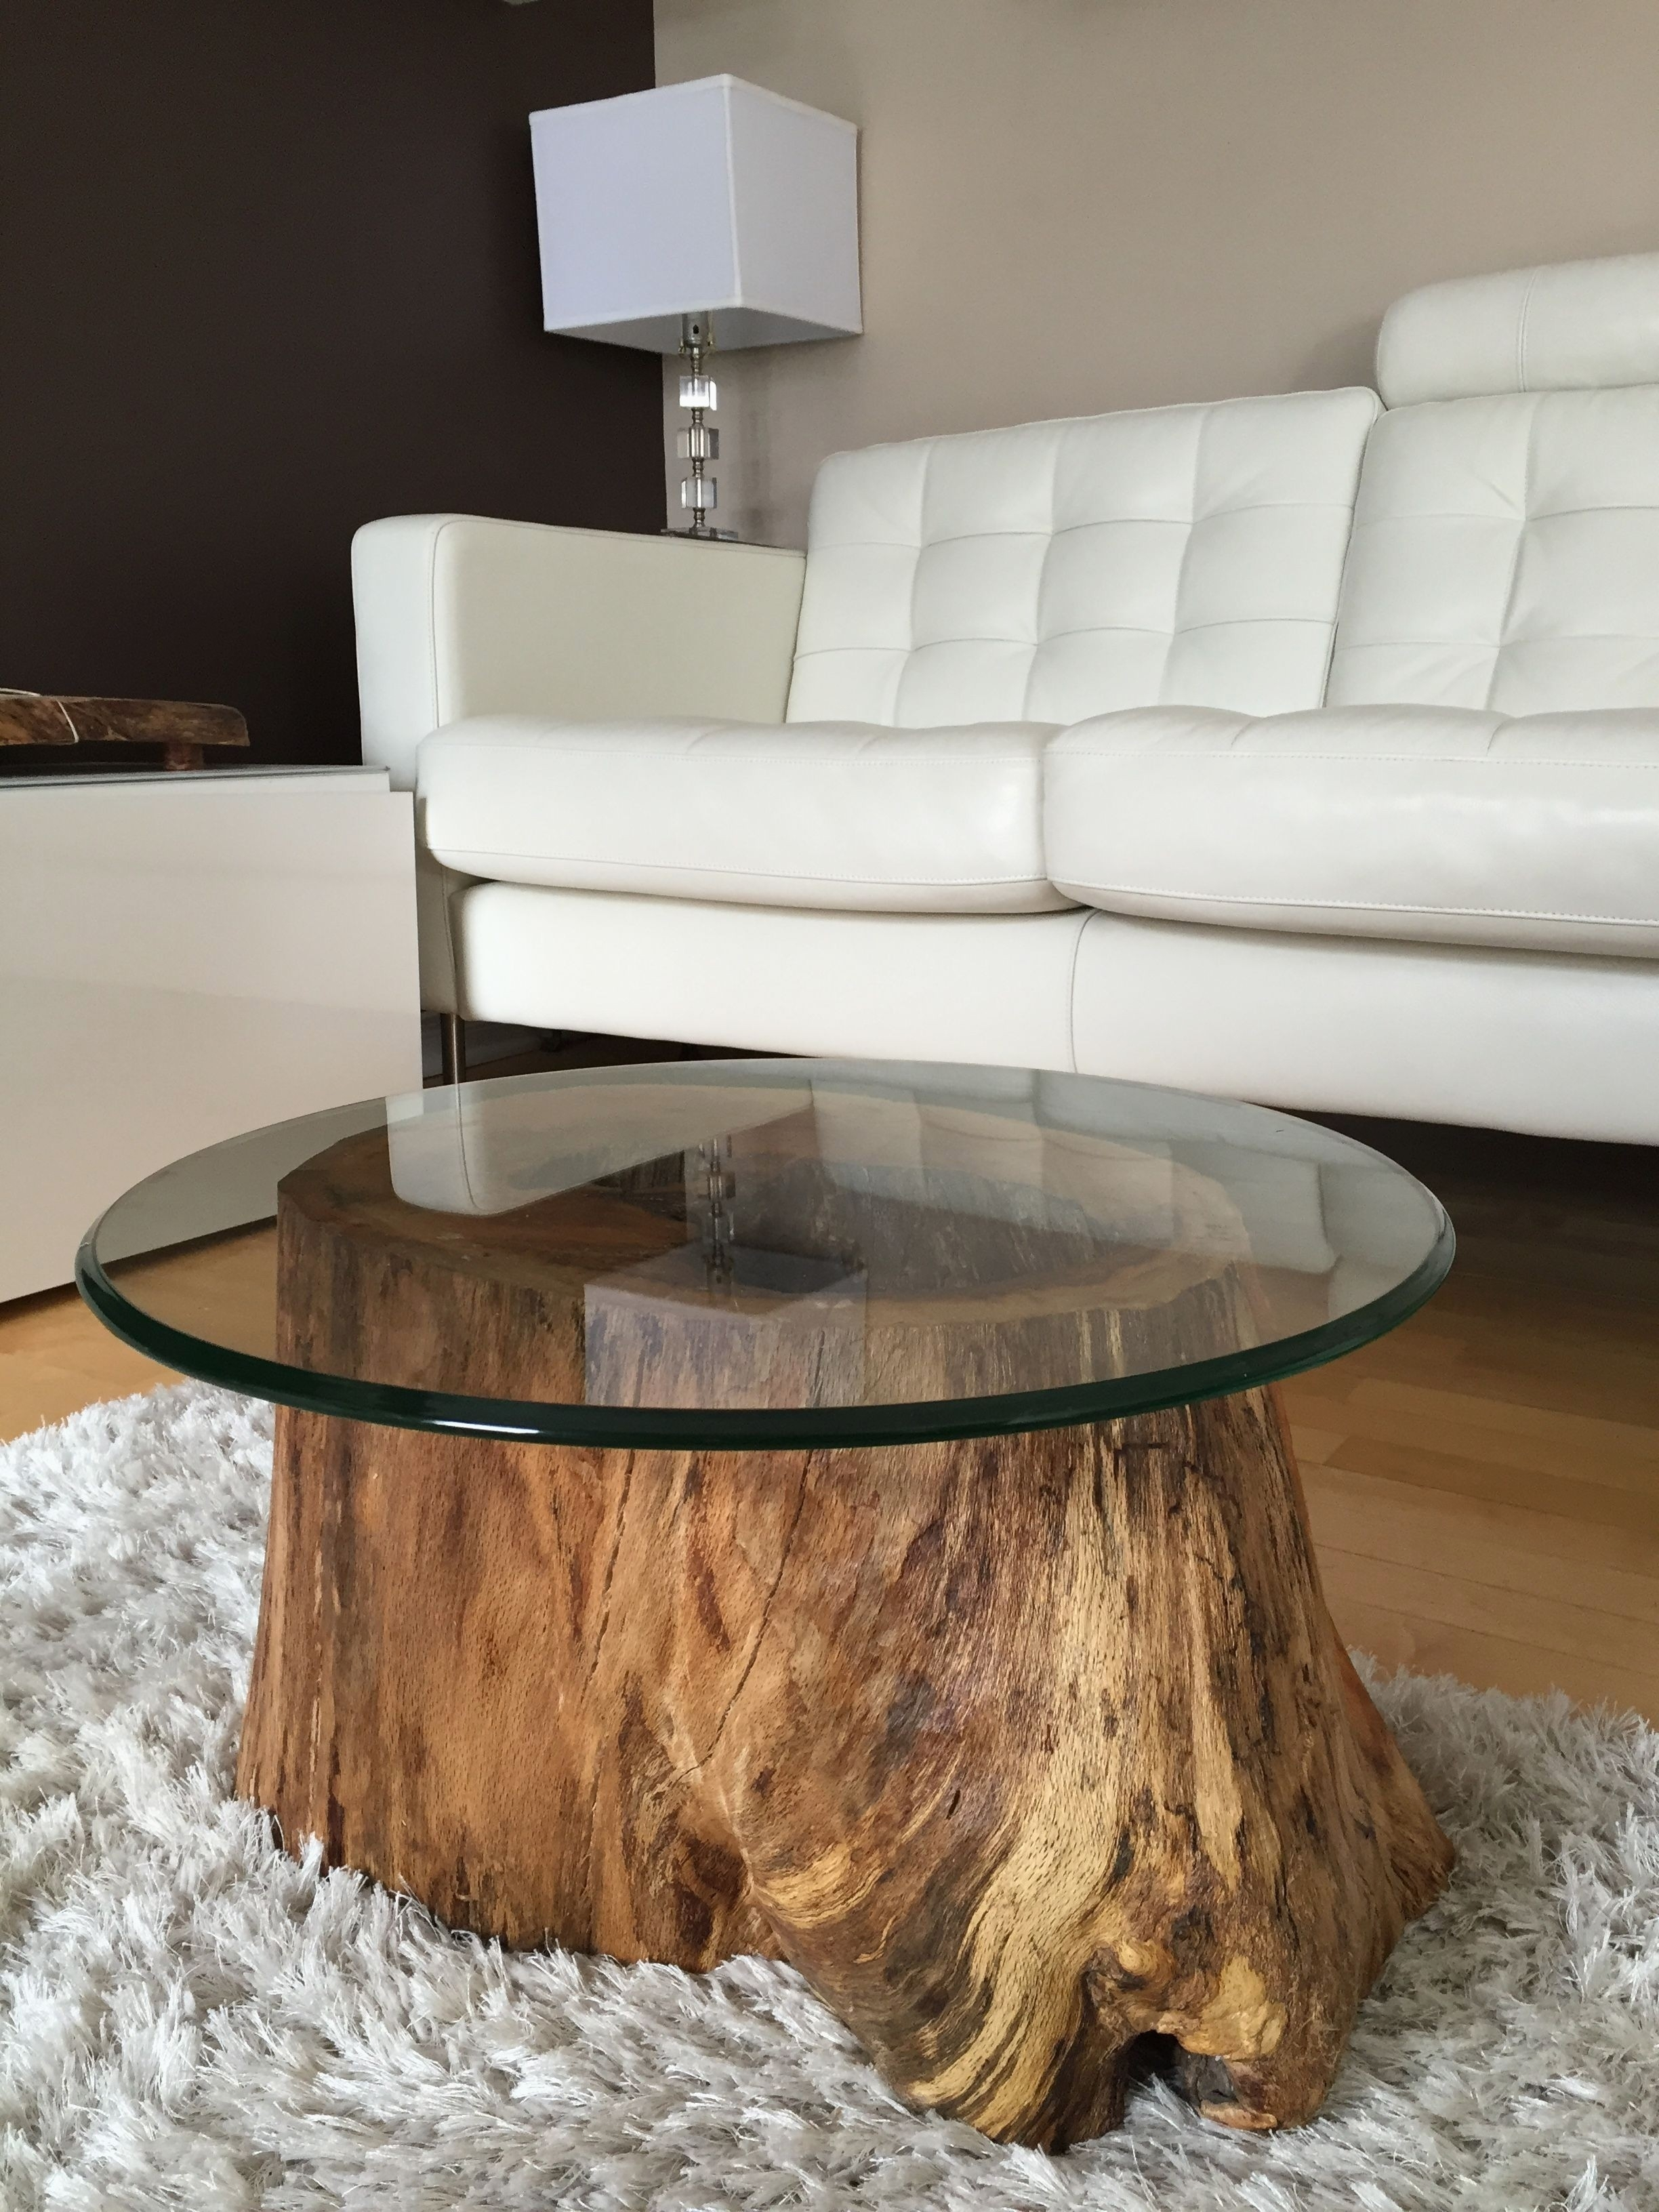 Round Carved Wood Coffee Table Advanced Coffee Tables 23 Pinterest pertaining to Round Carved Wood Coffee Tables (Image 20 of 30)